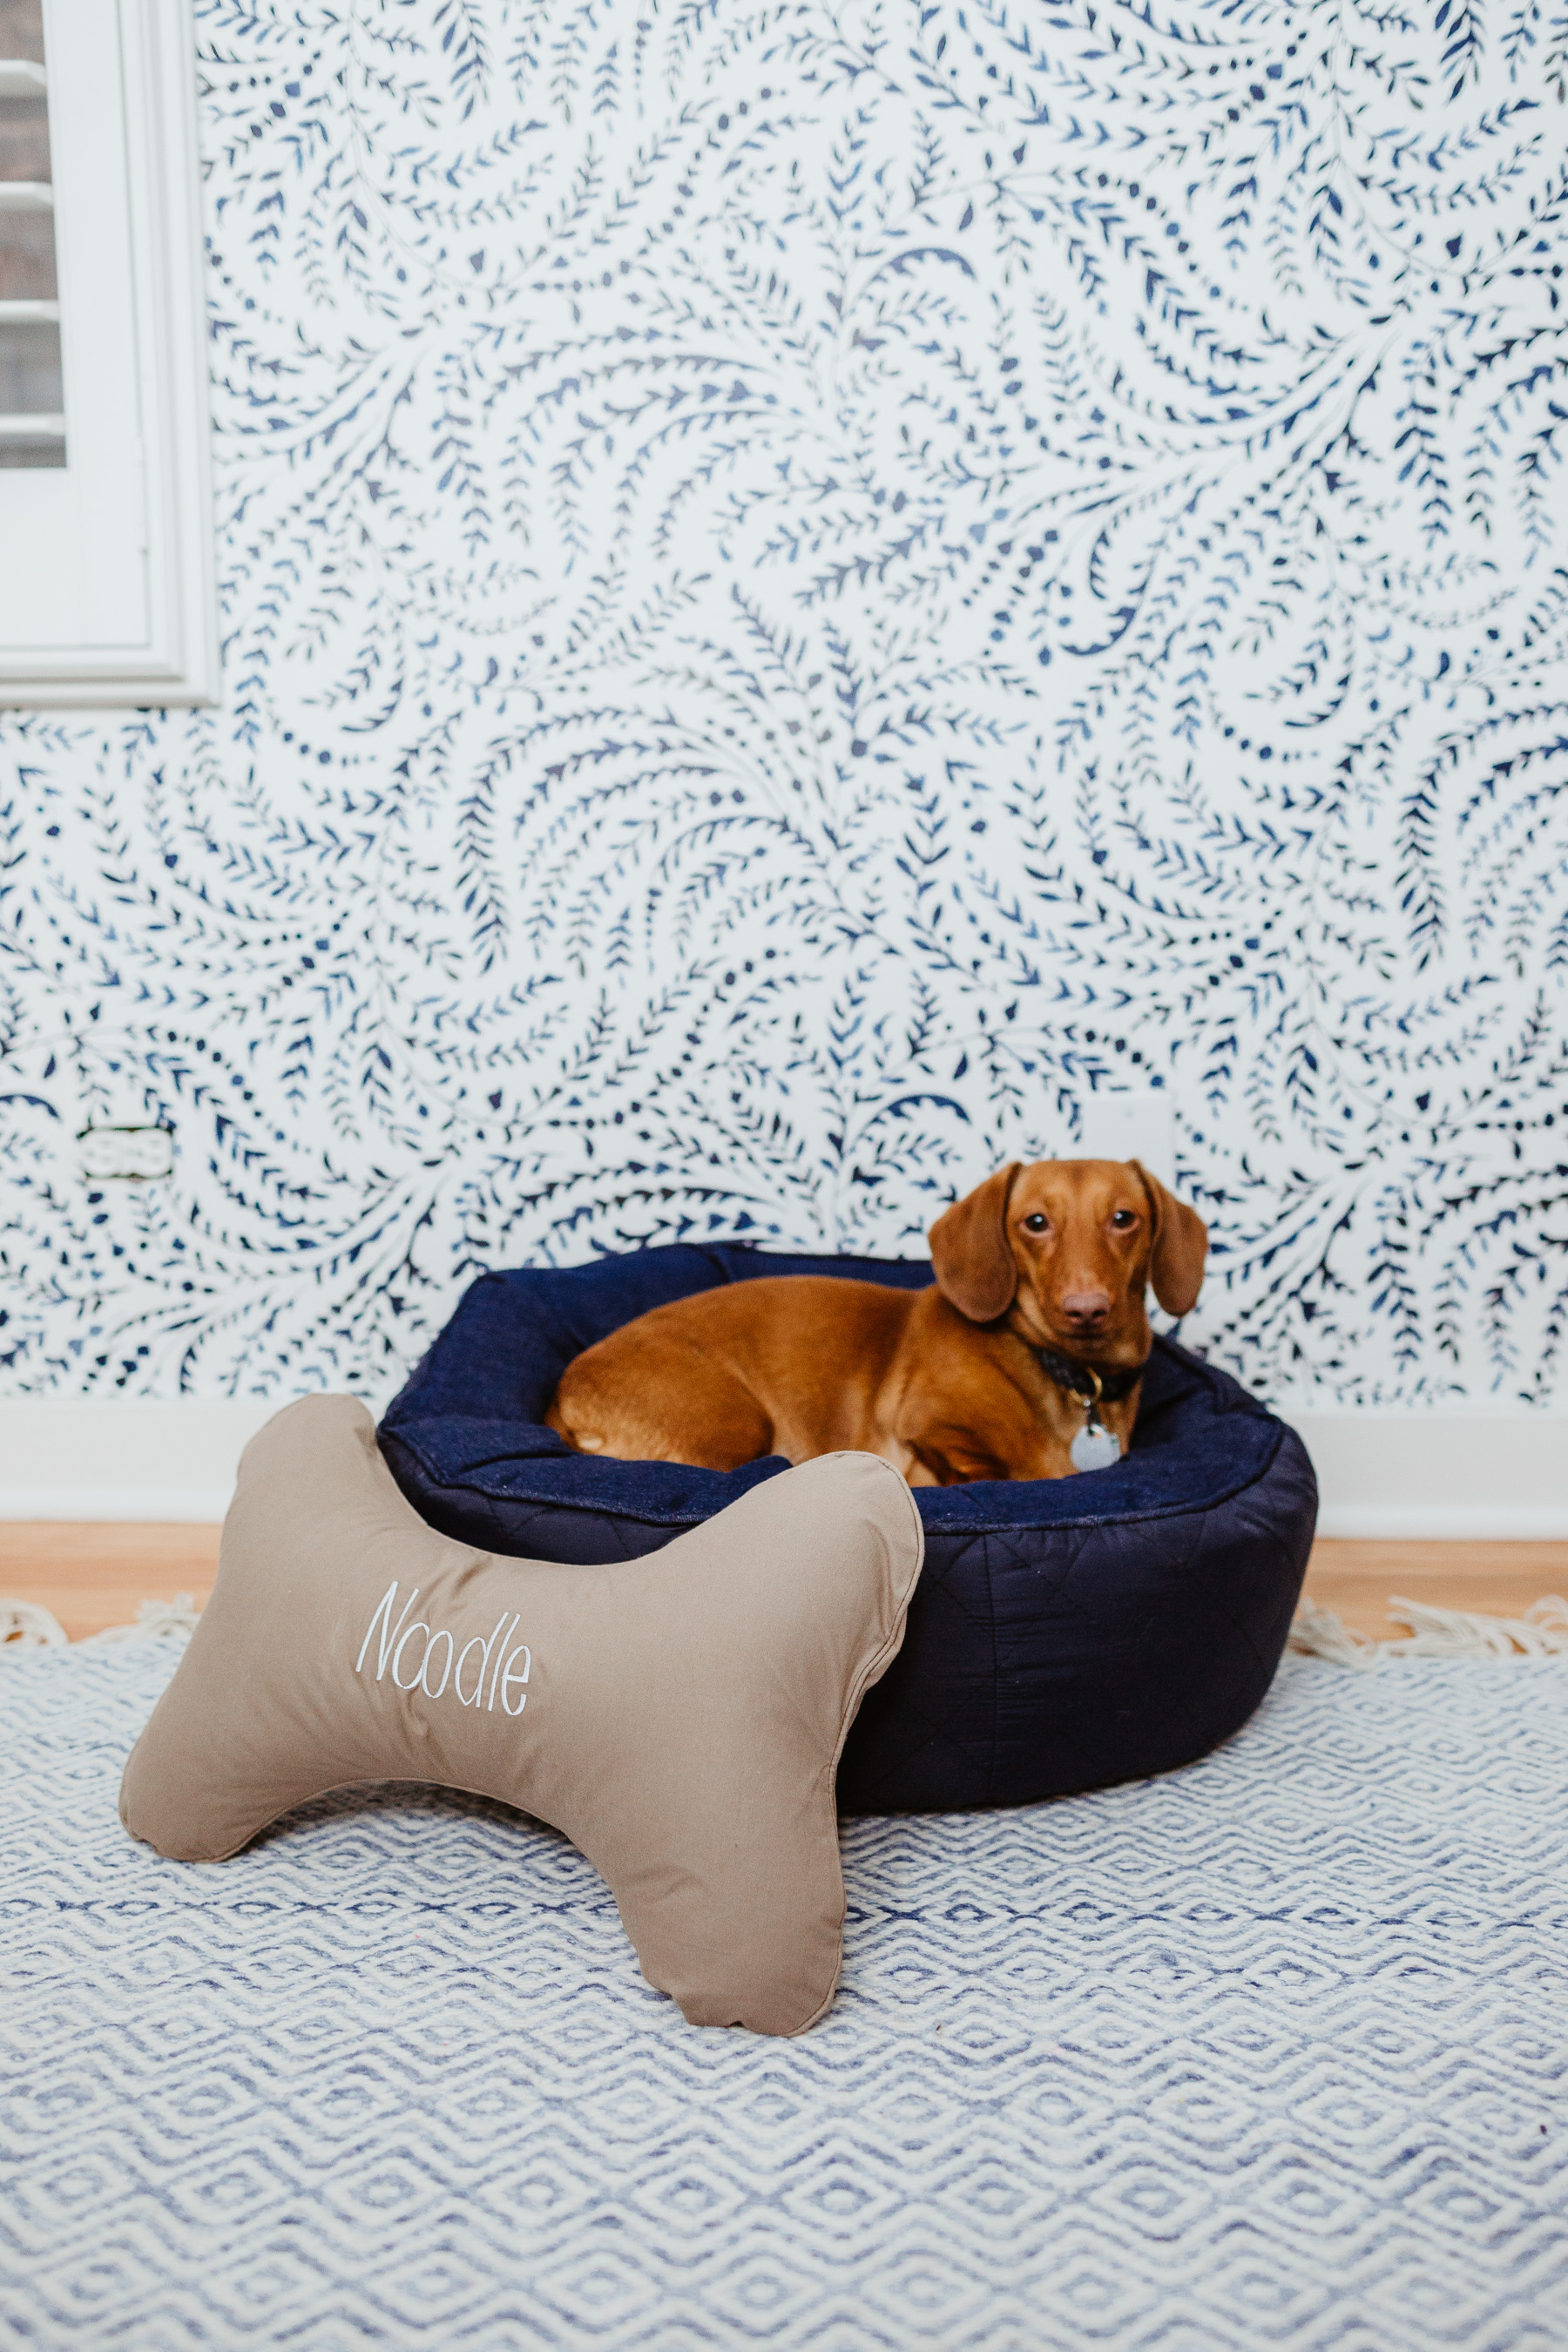 The Cutest Dog Products - Solid round dog bag